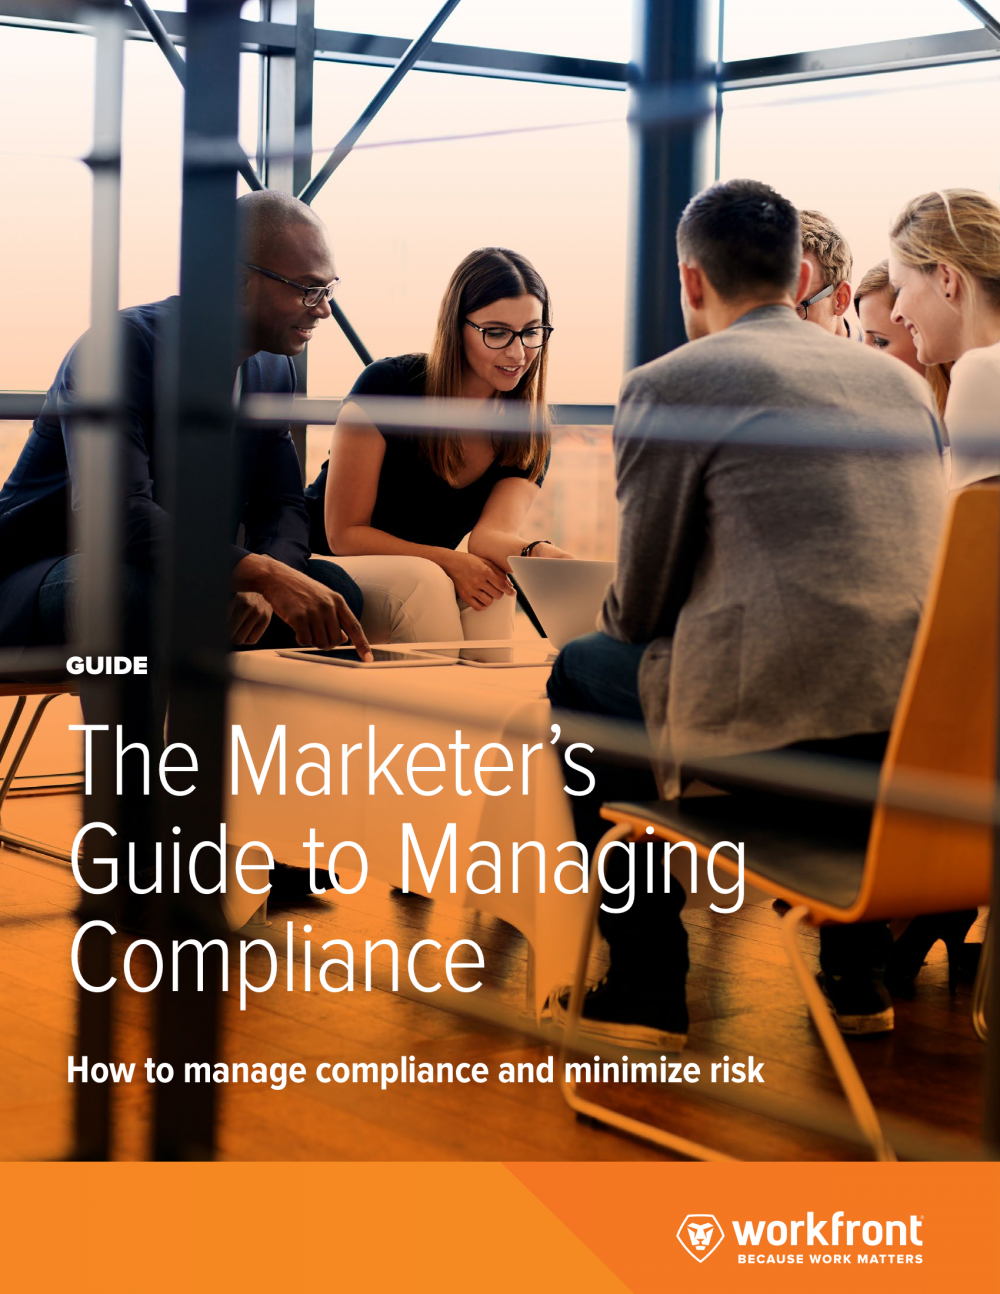 The Marketer's Guide to Managing Compliance